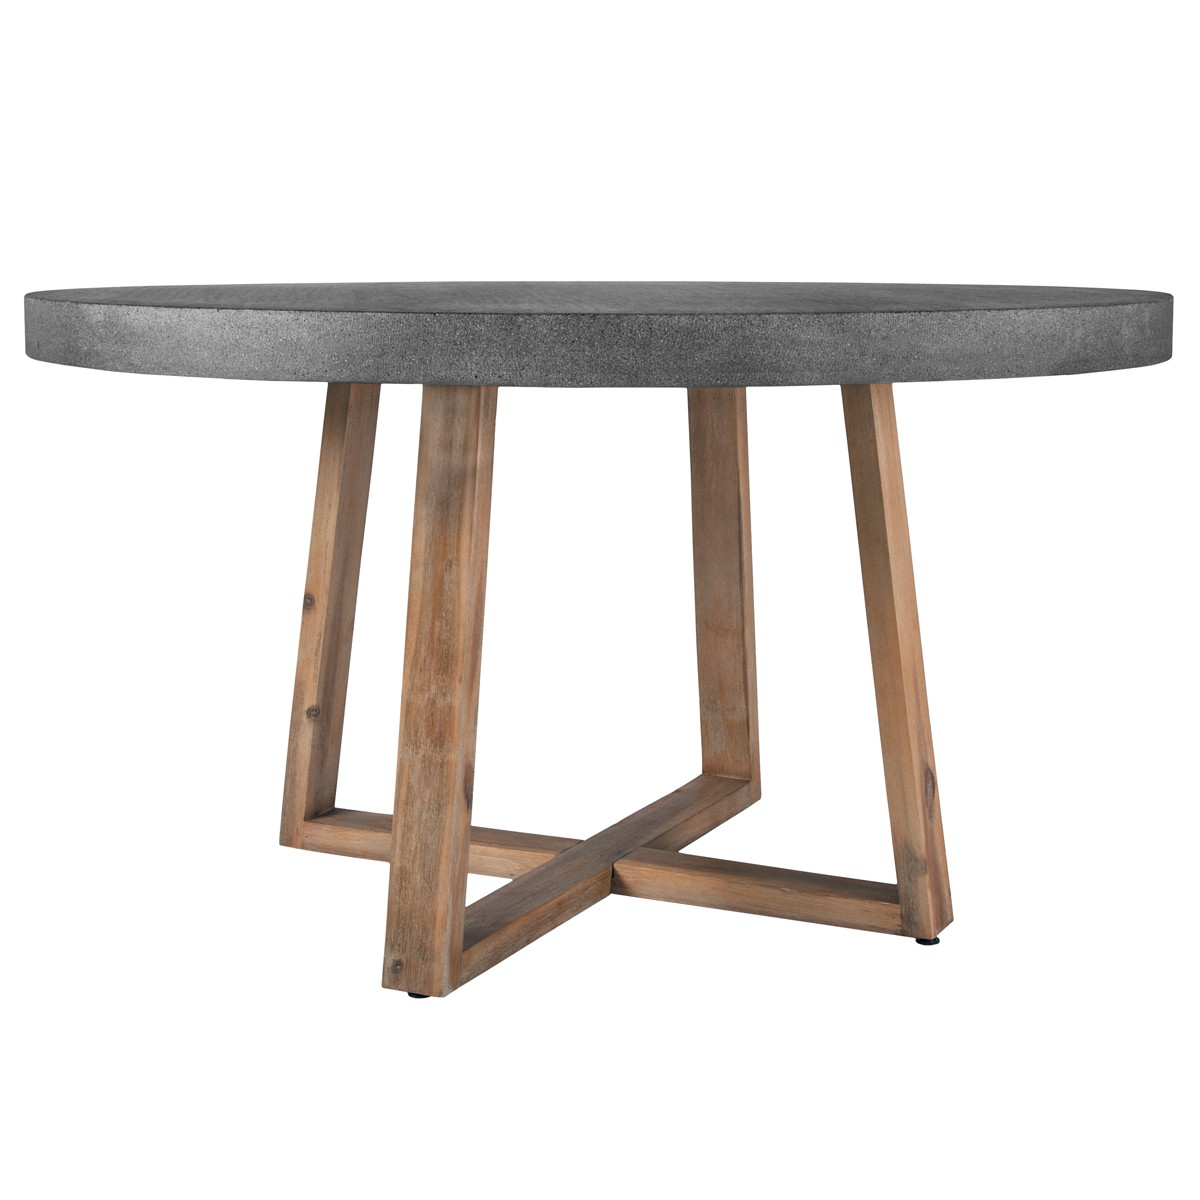 Table ronde r sine et bois 140 cm koya design for Table ronde en bois exterieur